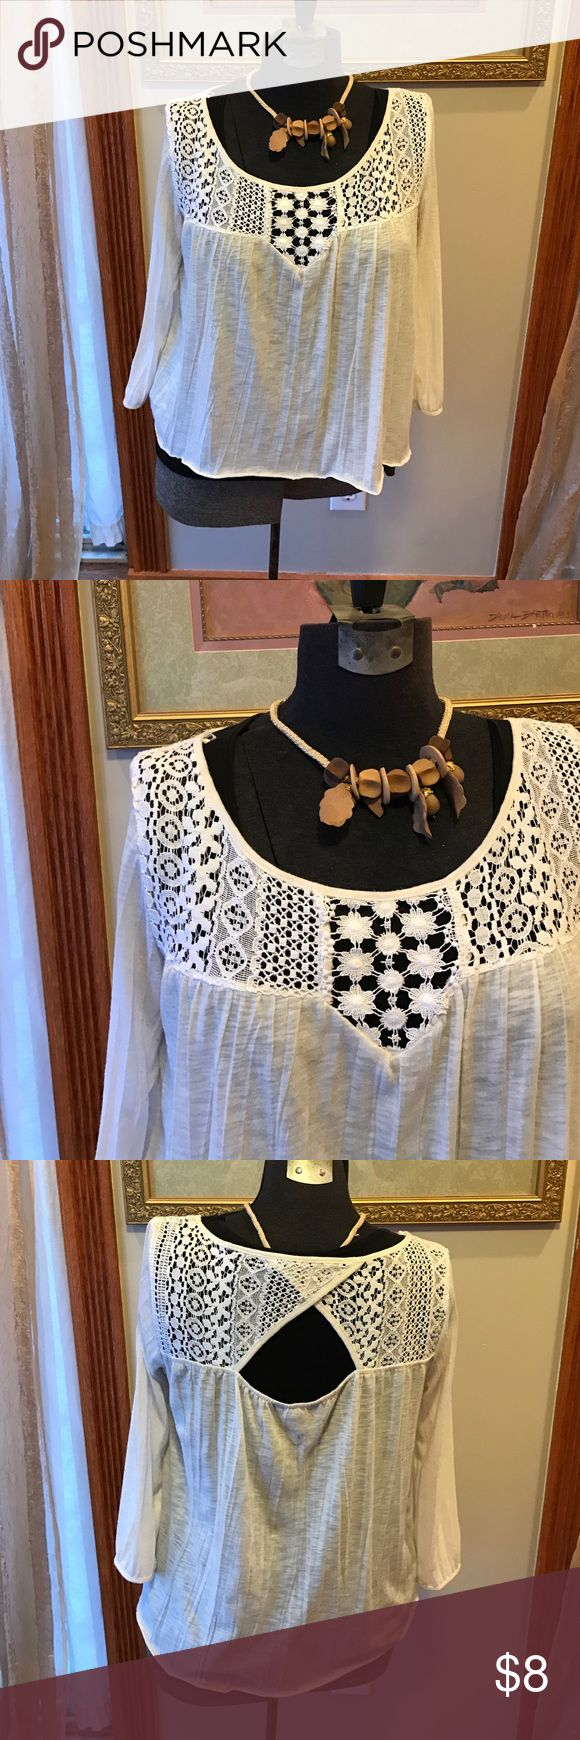 AMERICAN EAGLE SHIRT Flawless cream colored flow he BoHo style in American Eagle shirt with lace details in a cut out back American Eagle Outfitters Tops Blouses